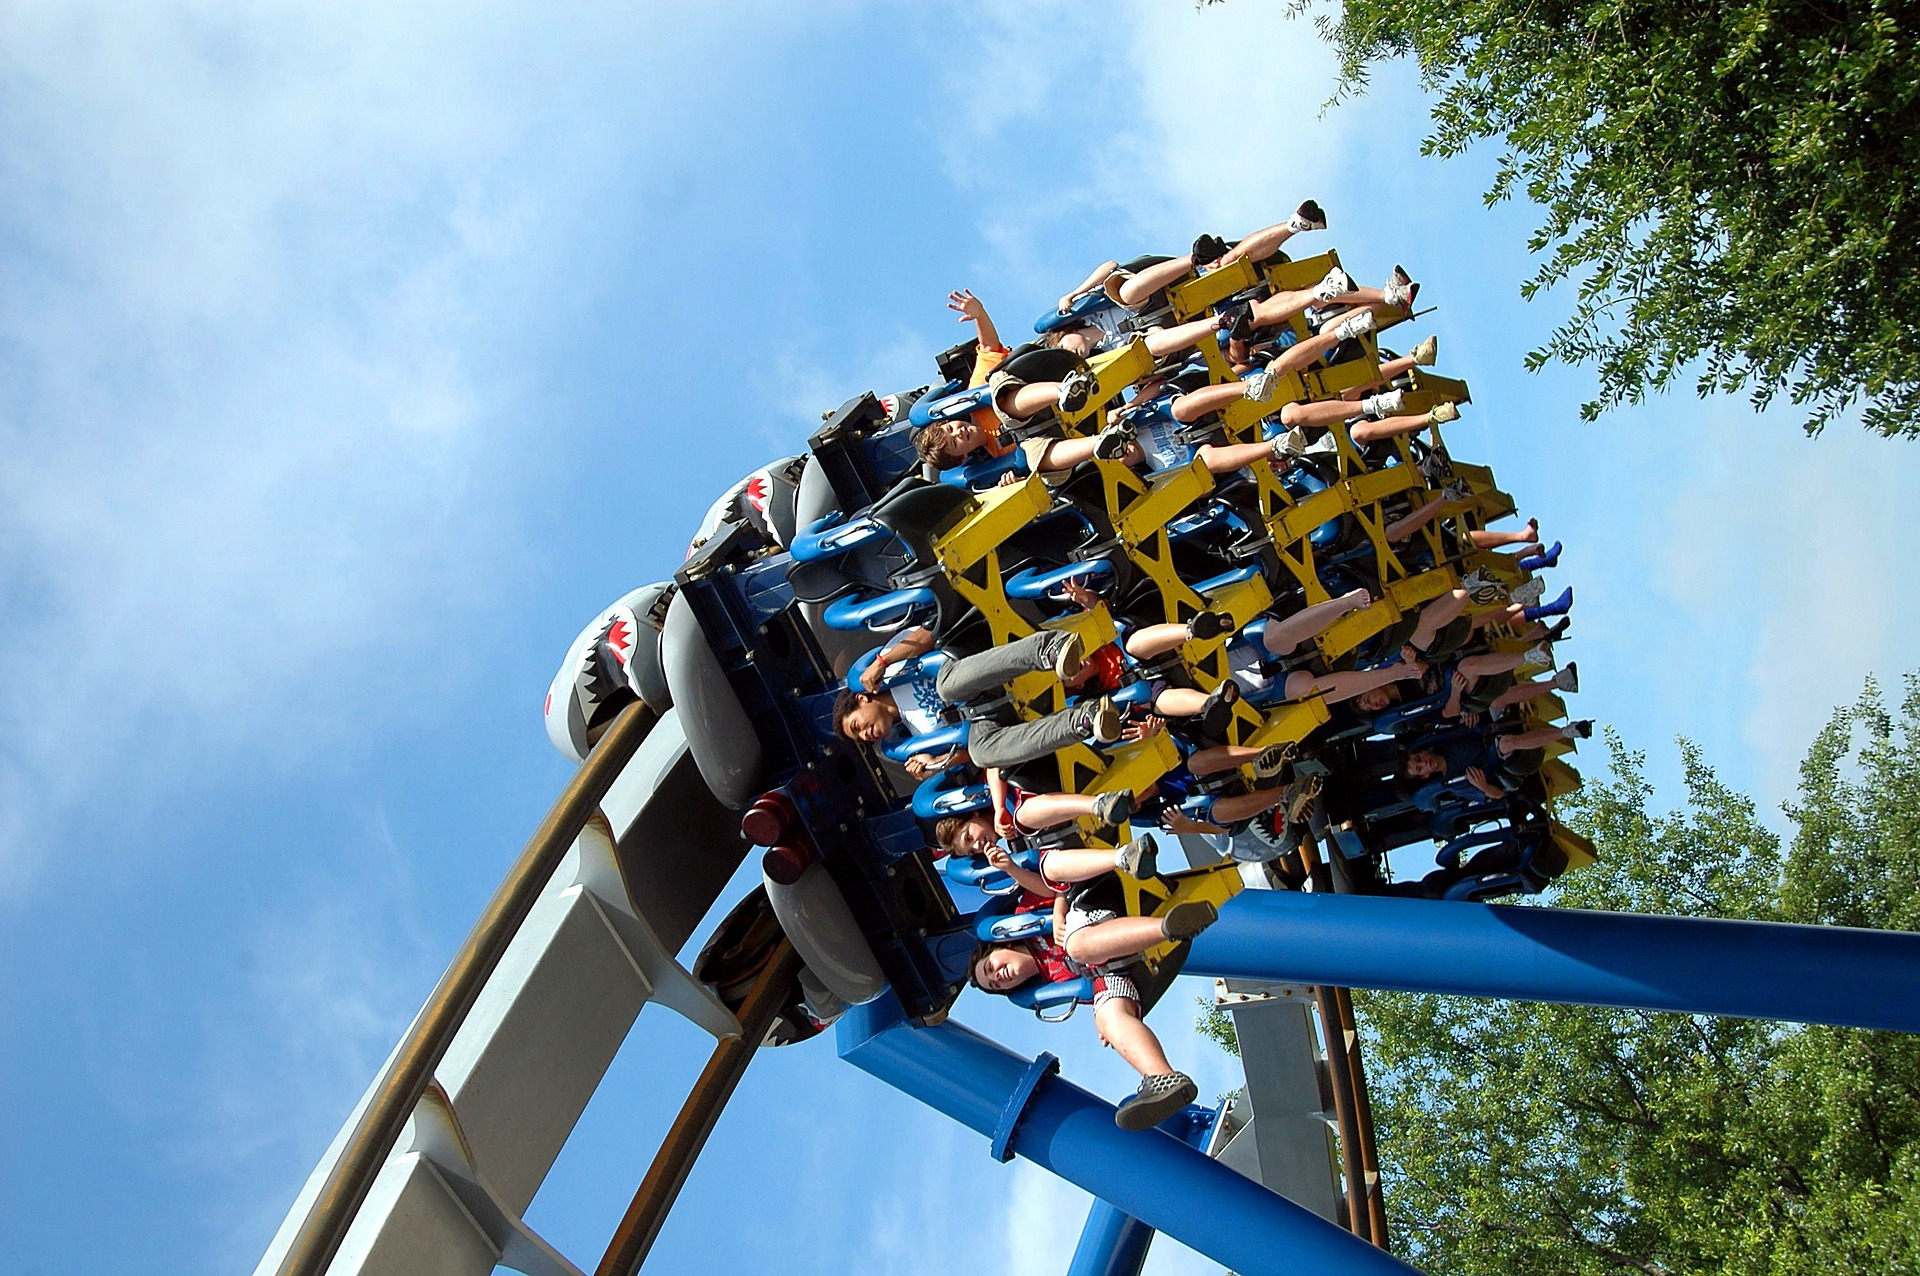 Your Journey Into Tech: Week 1 - Emotional rollercoasters and comfort zones